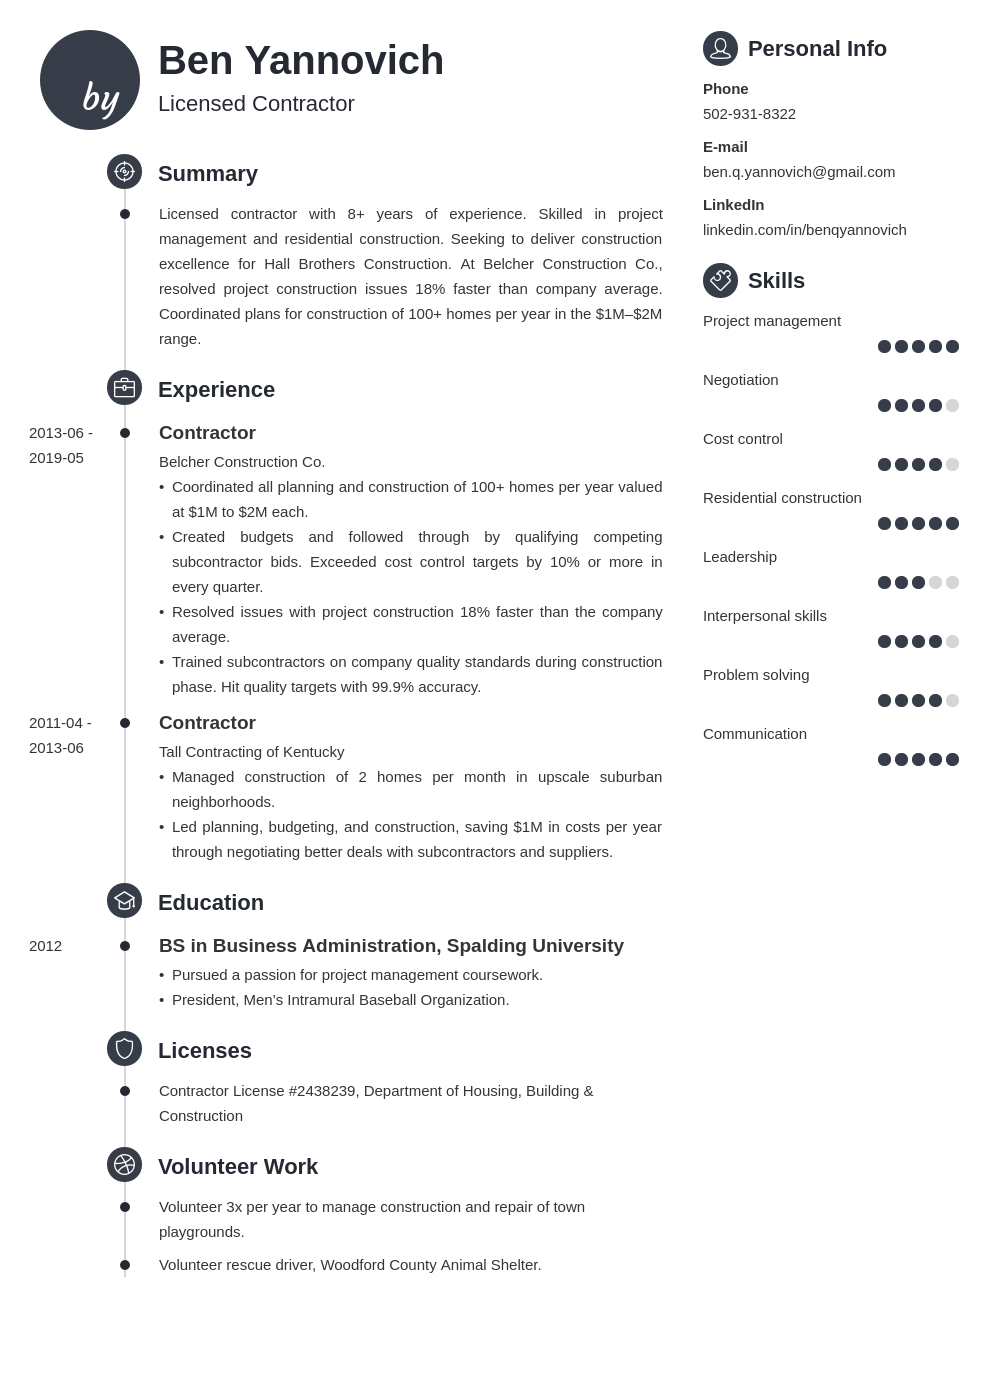 Contractor Resume Example Template Primo Job Resume Examples Curriculum Vitae Template Resume Examples